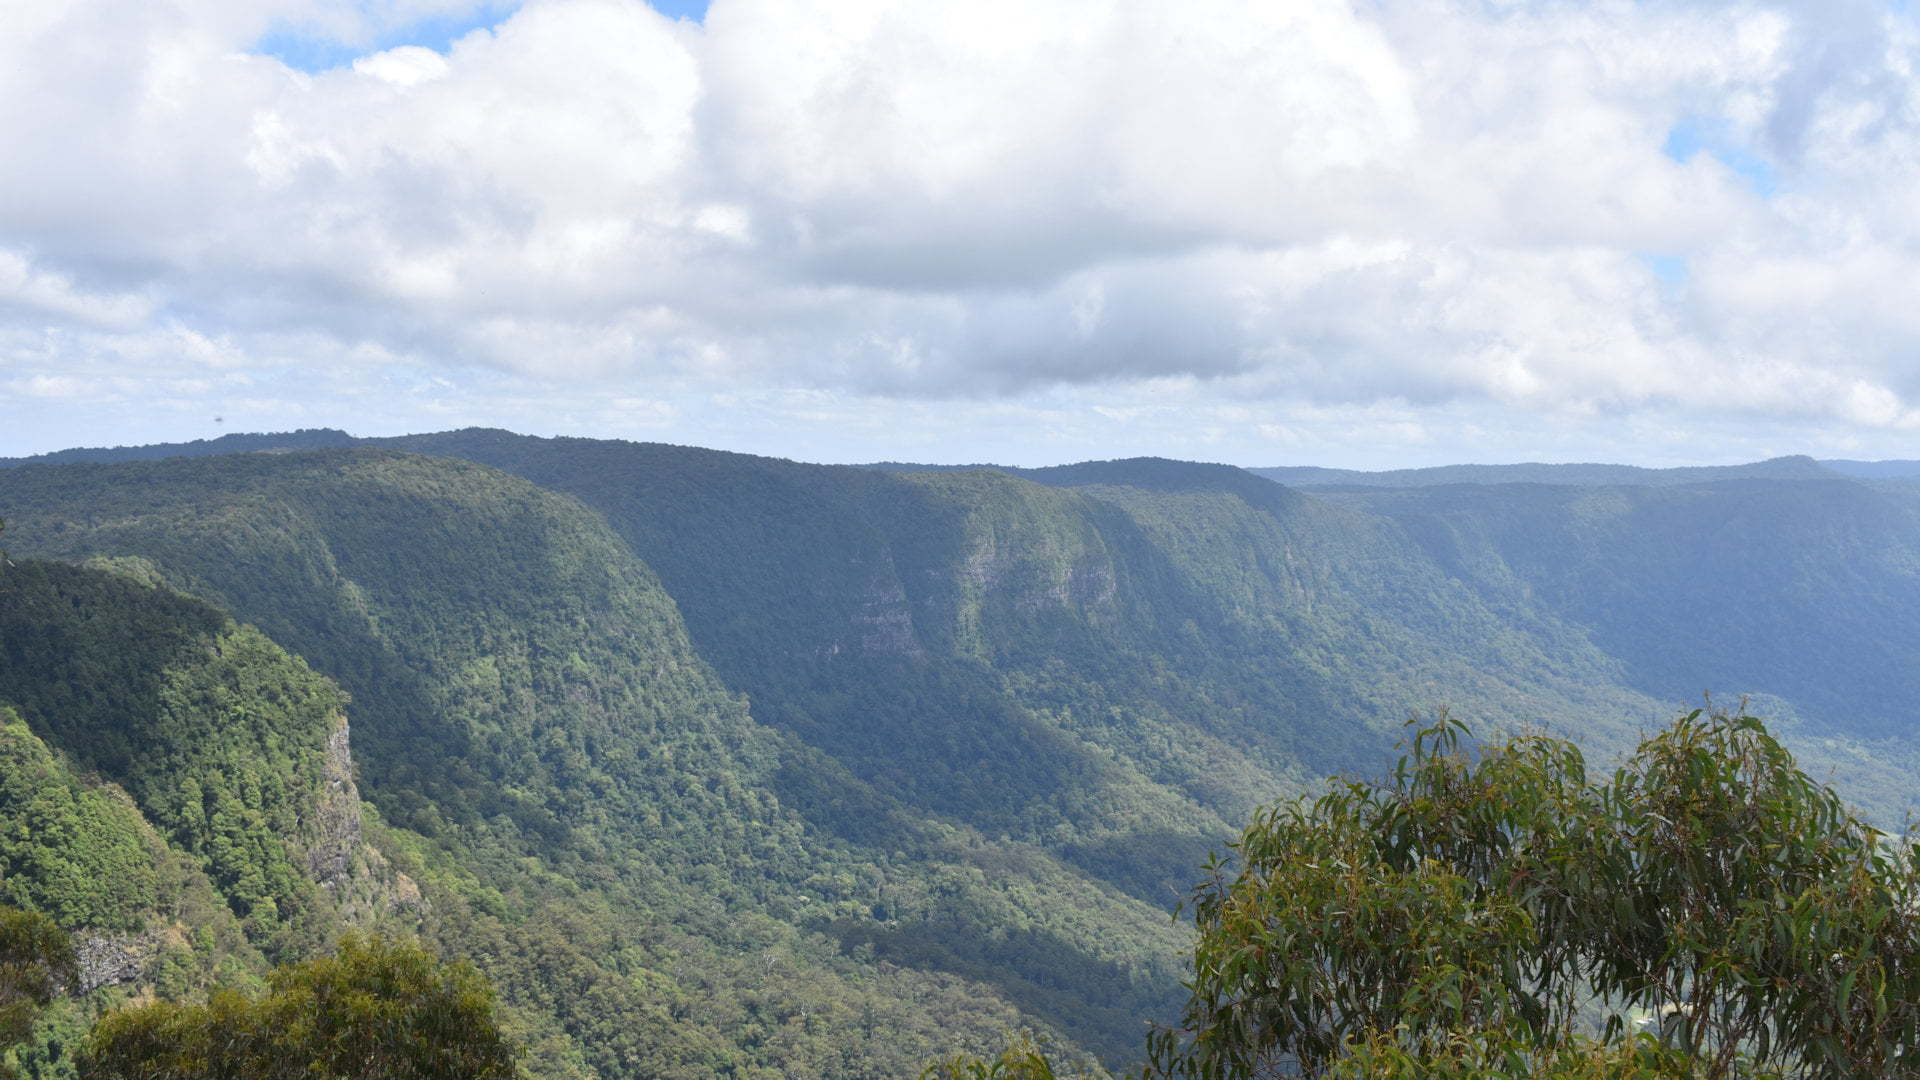 Caldera of the ancient Tweed Volcano, taken from The Pinnacle at the Border Ranges National Park